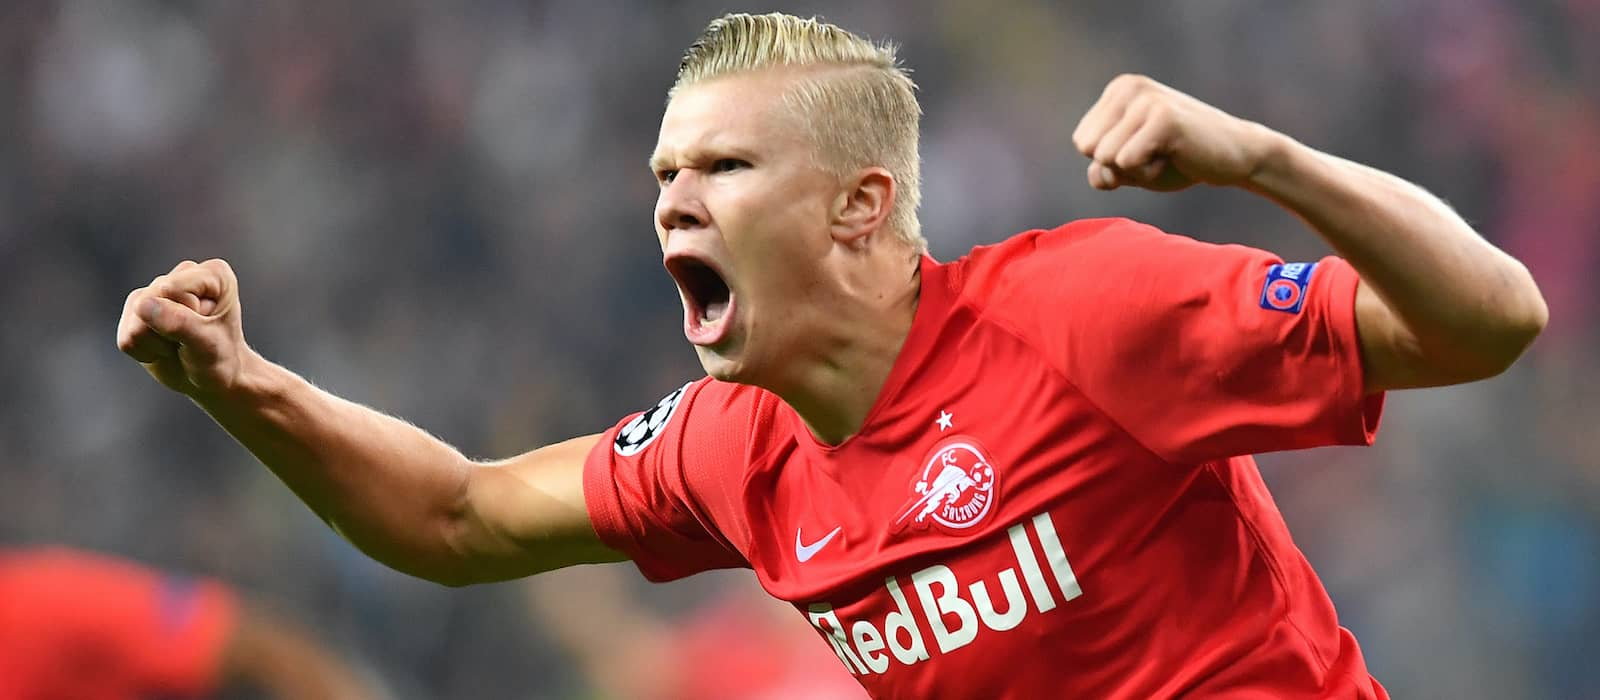 Manchester United given significant boost in race for Erling Braut Haaland's signature: report